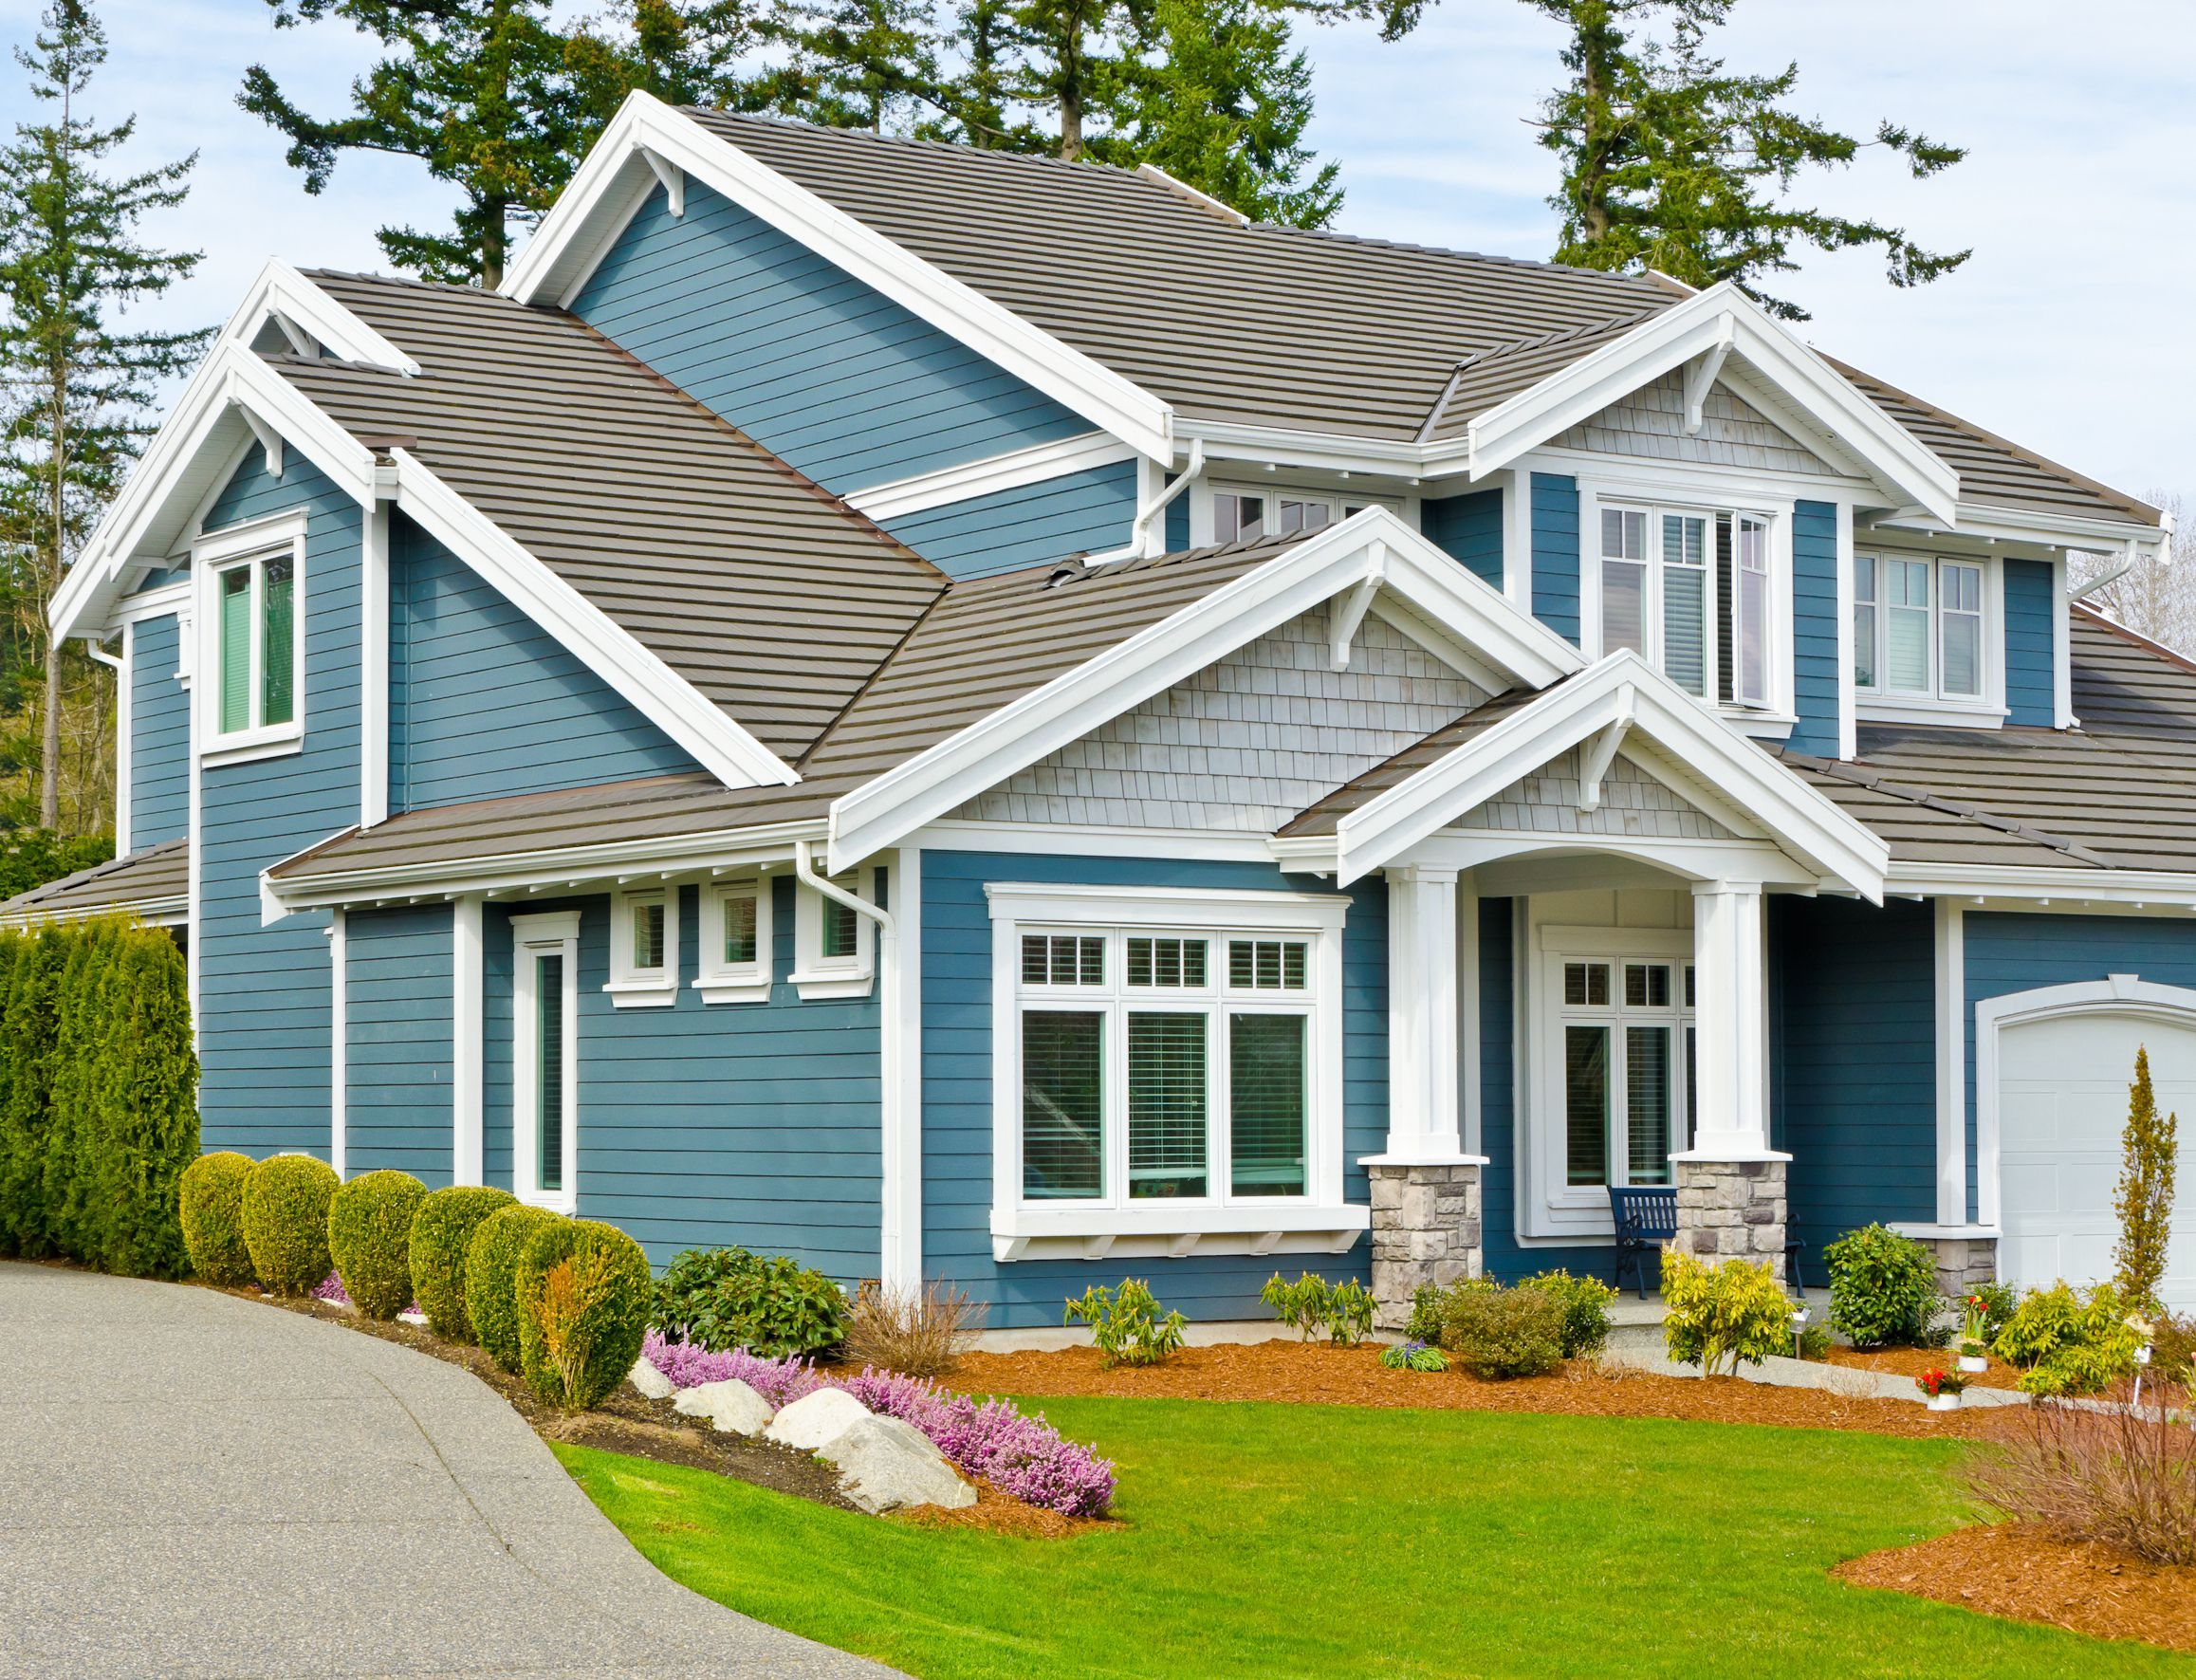 Attractive american house design with tiered gable roof - Exterior house gable decorations ...